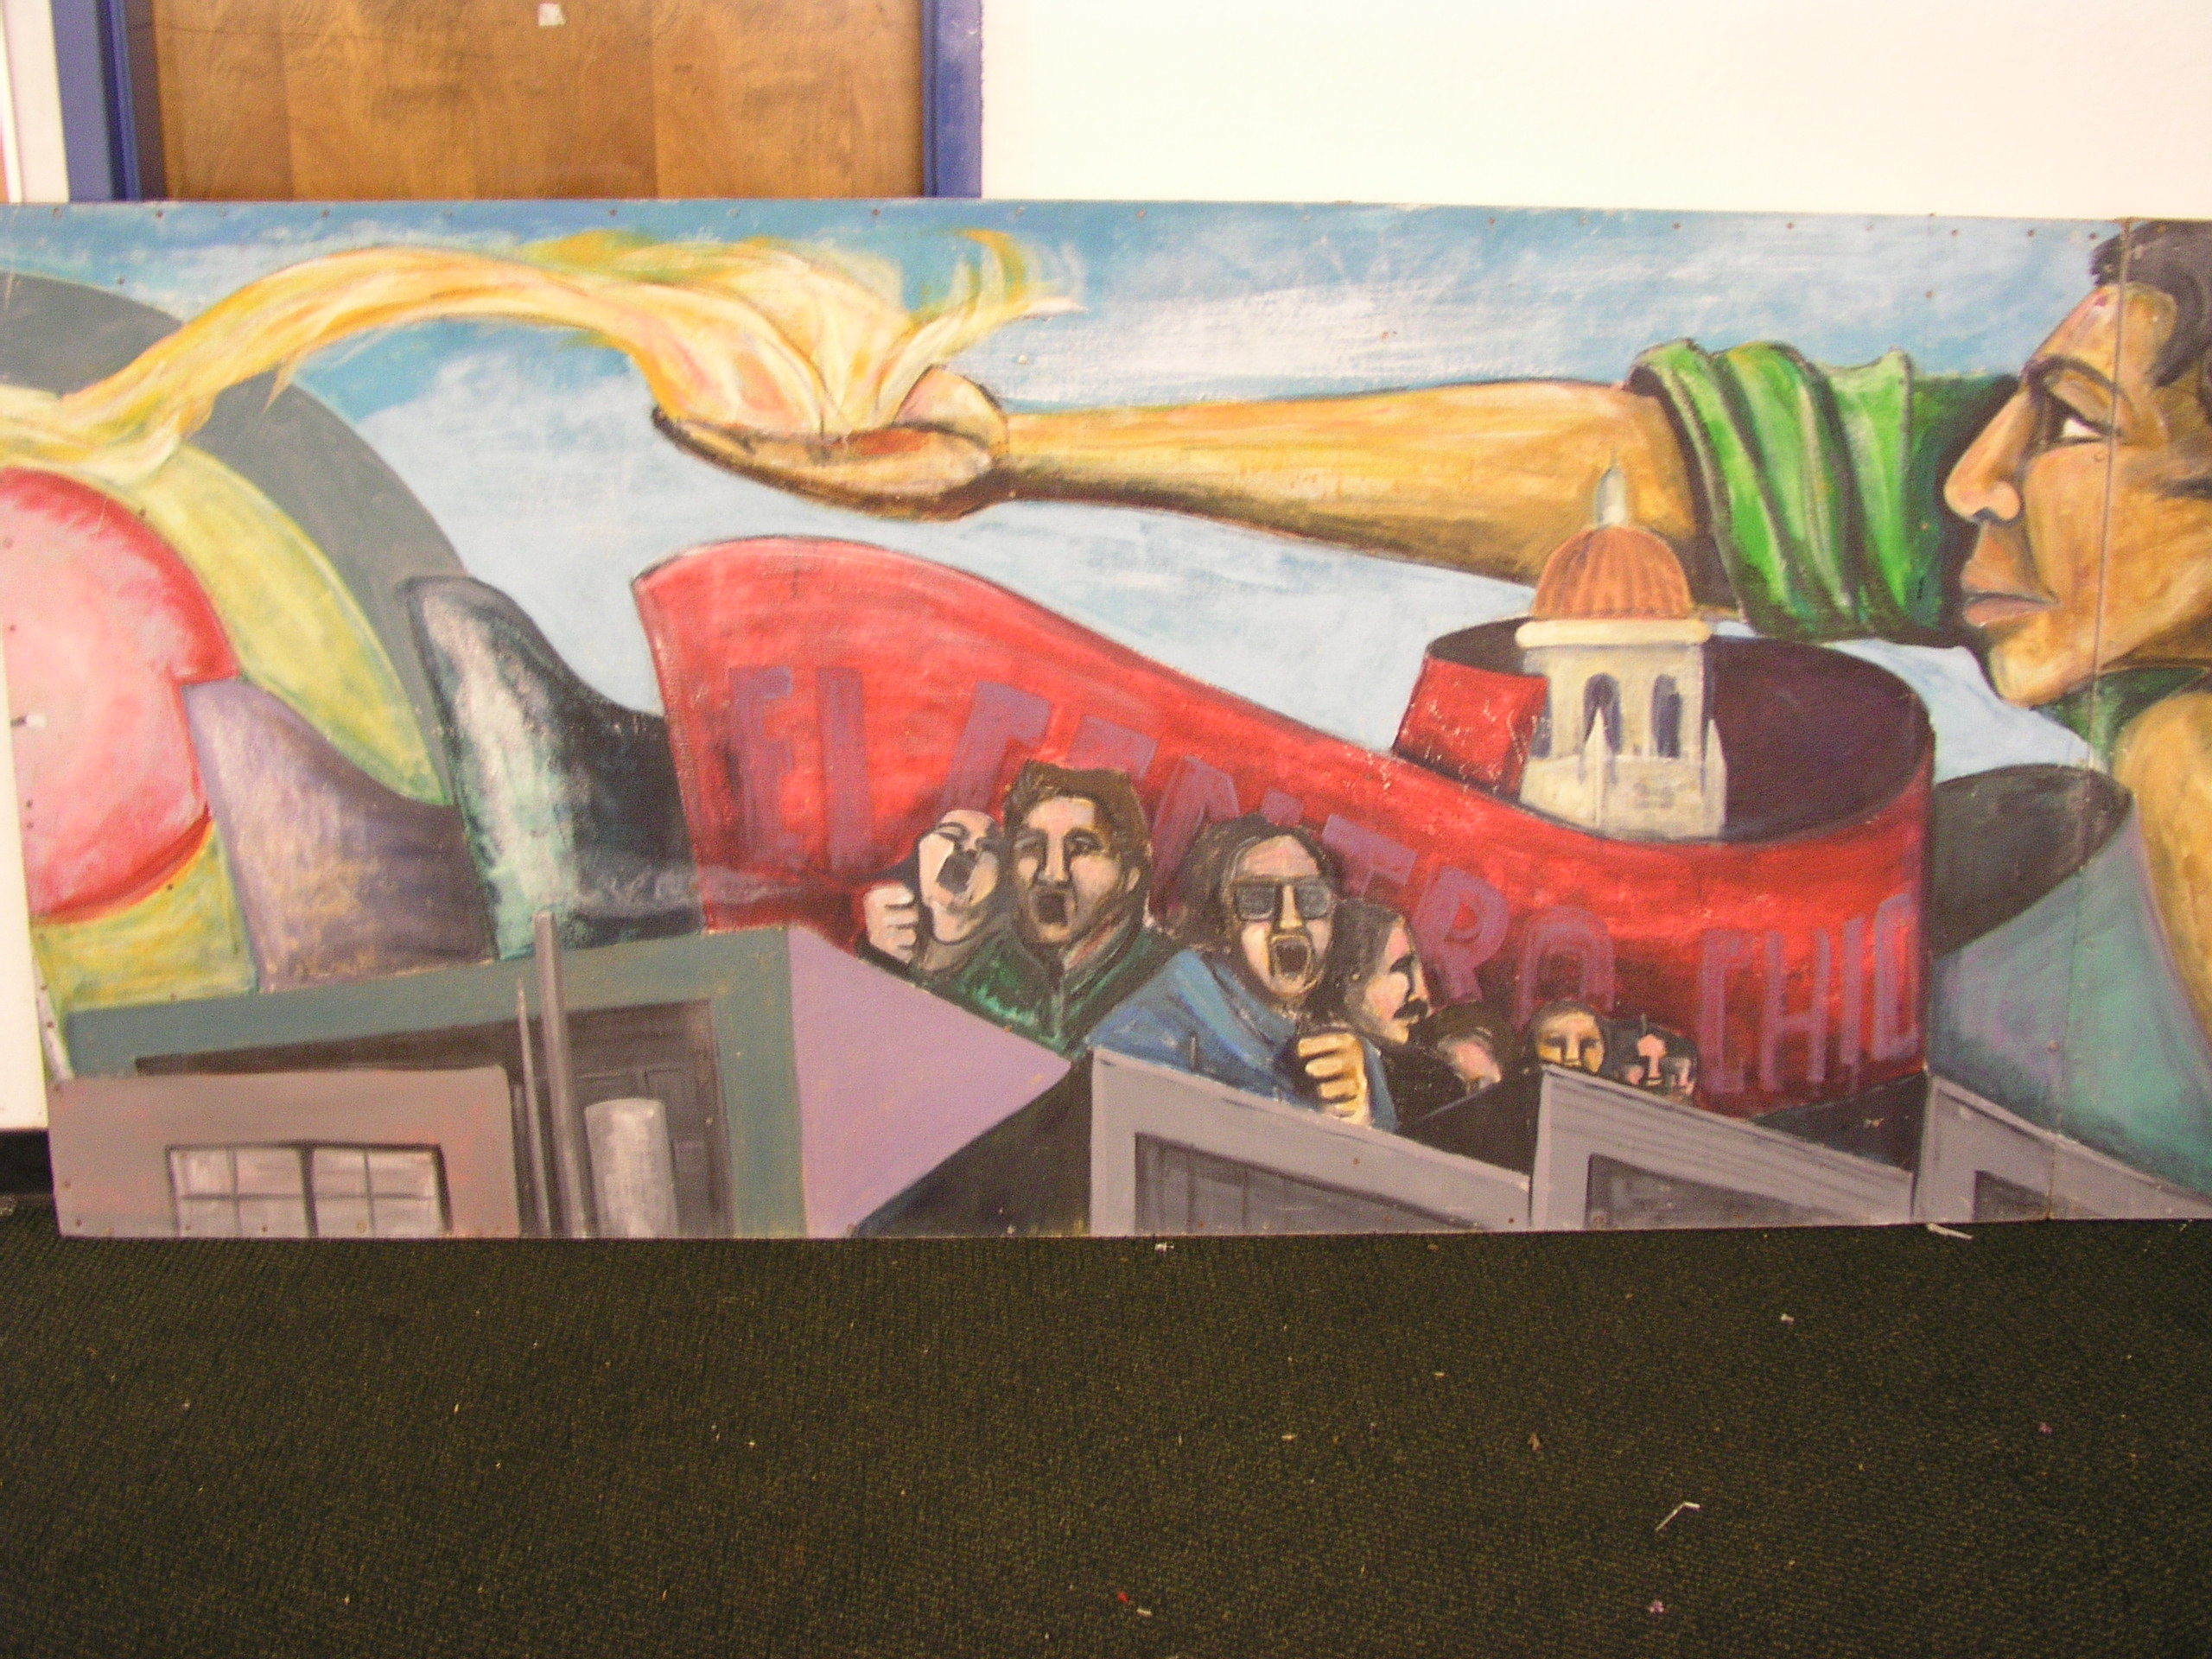 What specific issues/problems are the chicano community facing in these times?